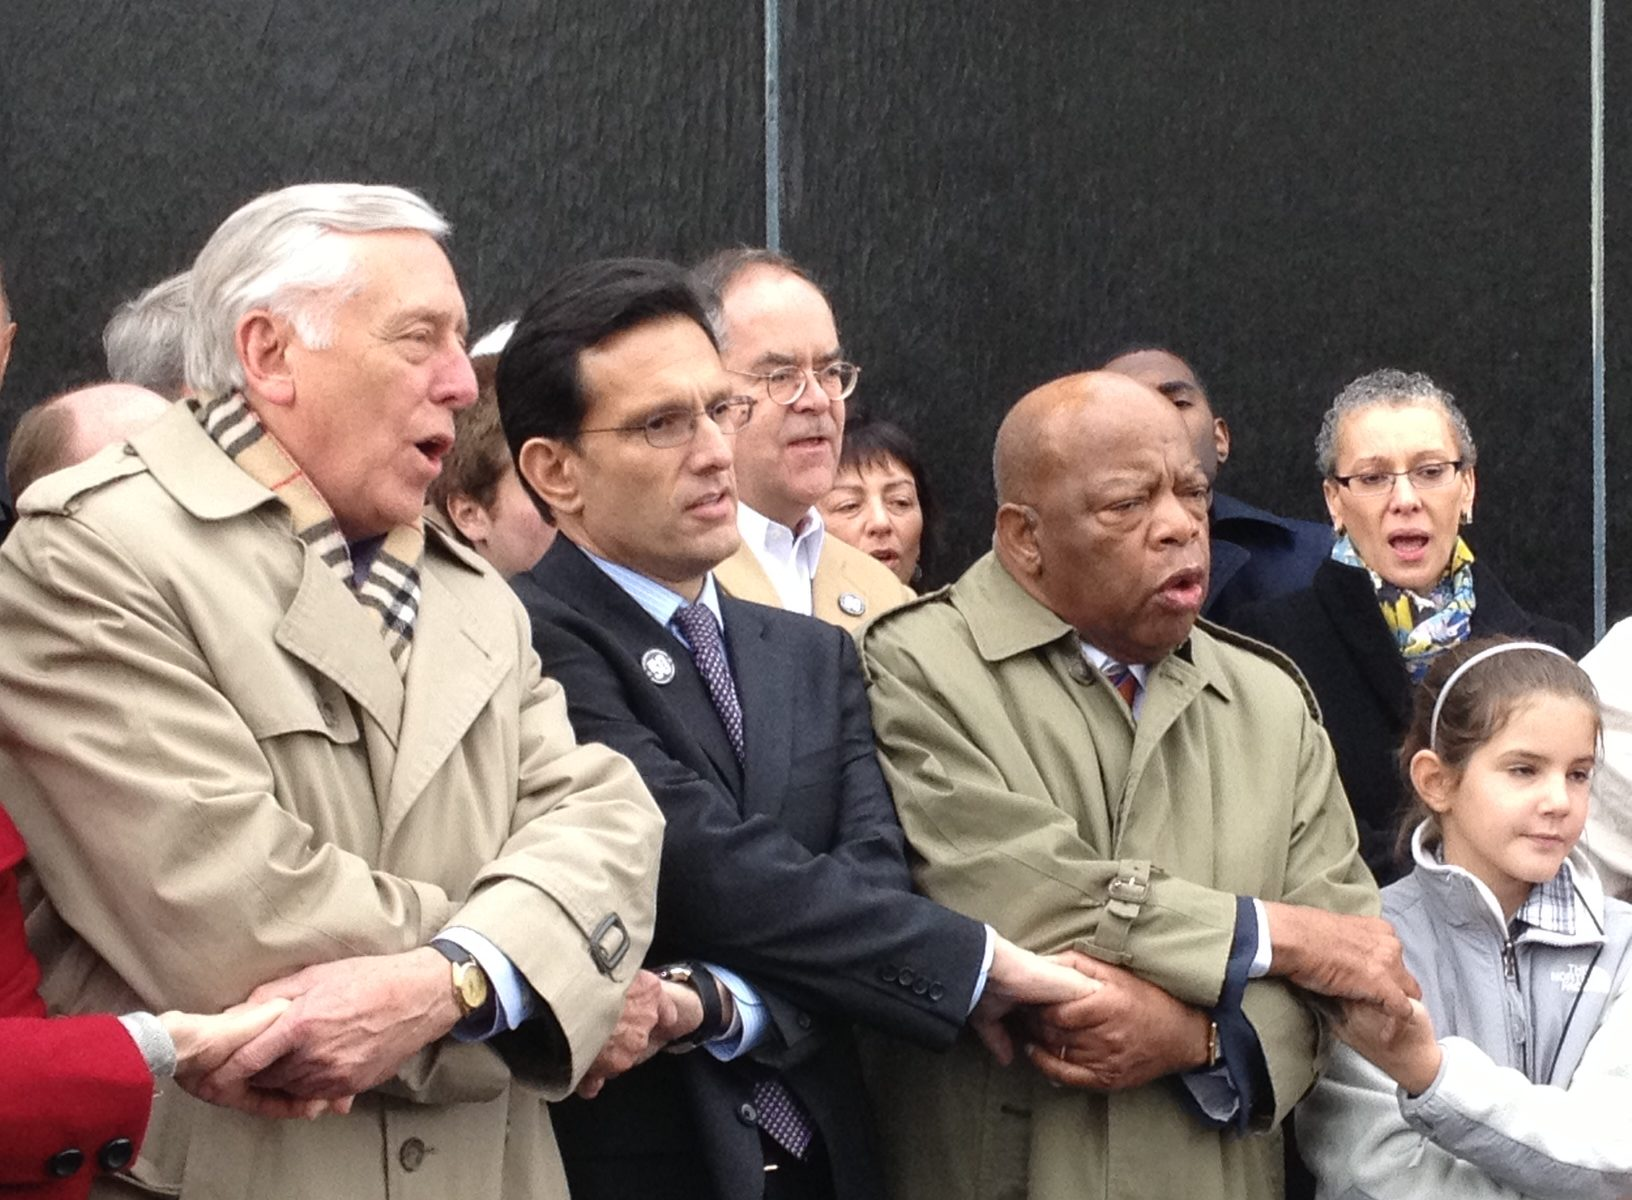 Steny Hoyer, Eric Cantor, John Lewis, Steny Hoyer Eric Cantor John Lewis, civil rights alabama, civil rights jewish